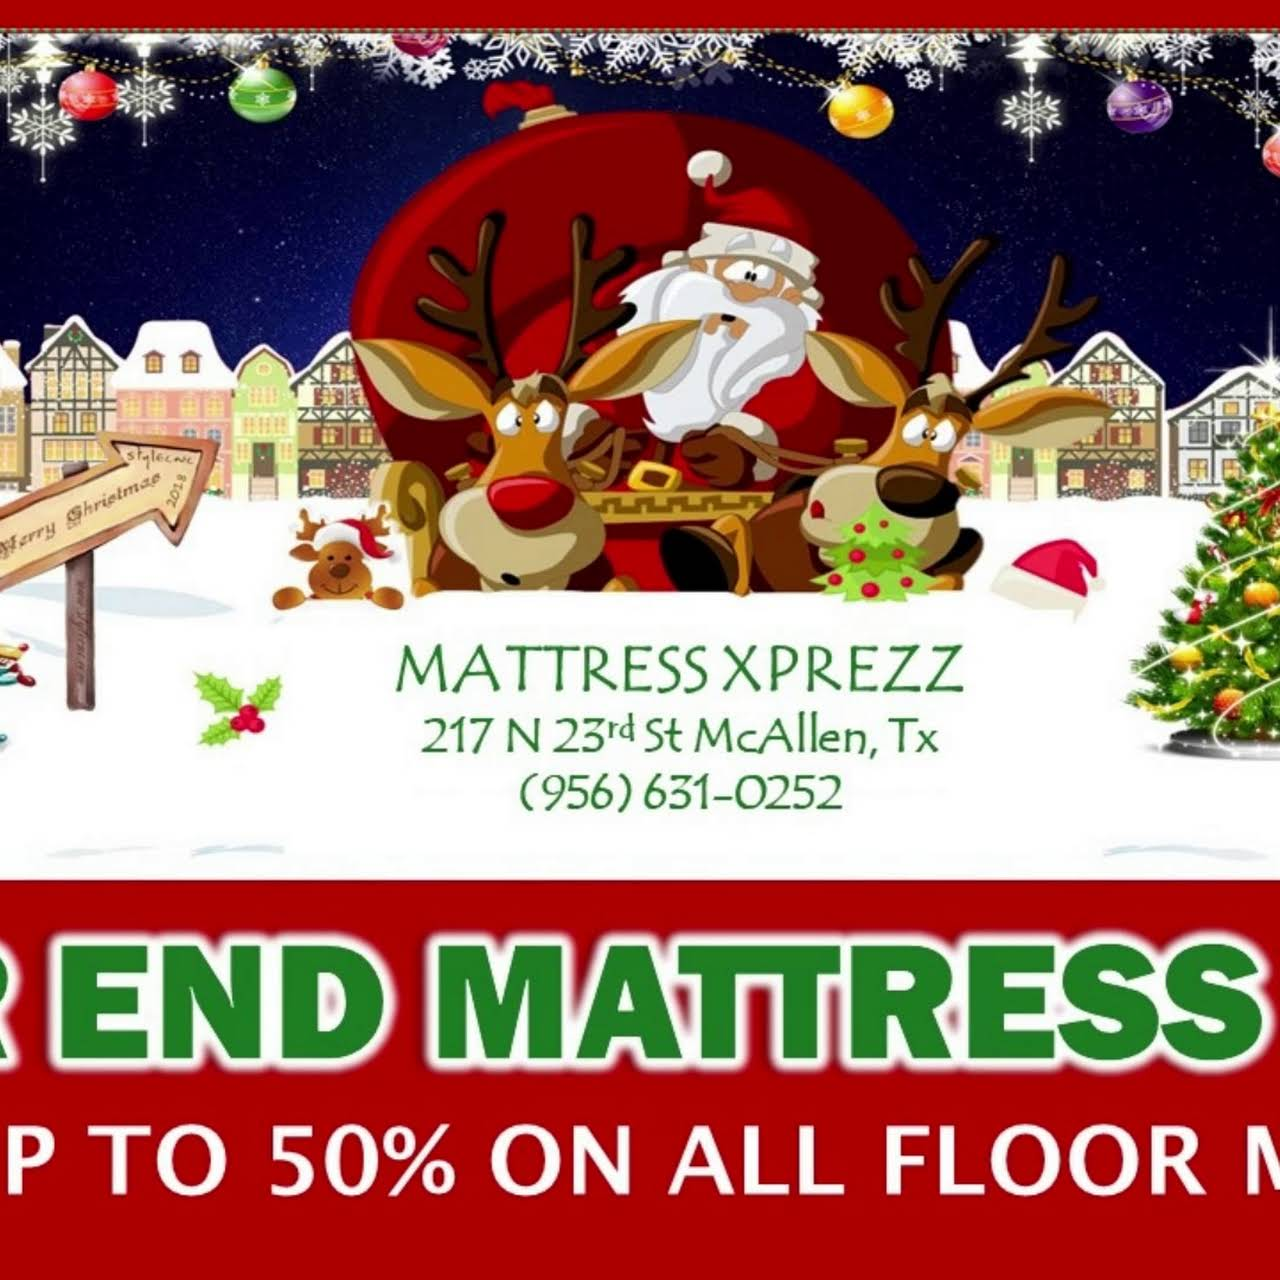 Mattress Xprezz 50 Down Delivers Today No Credit Needed